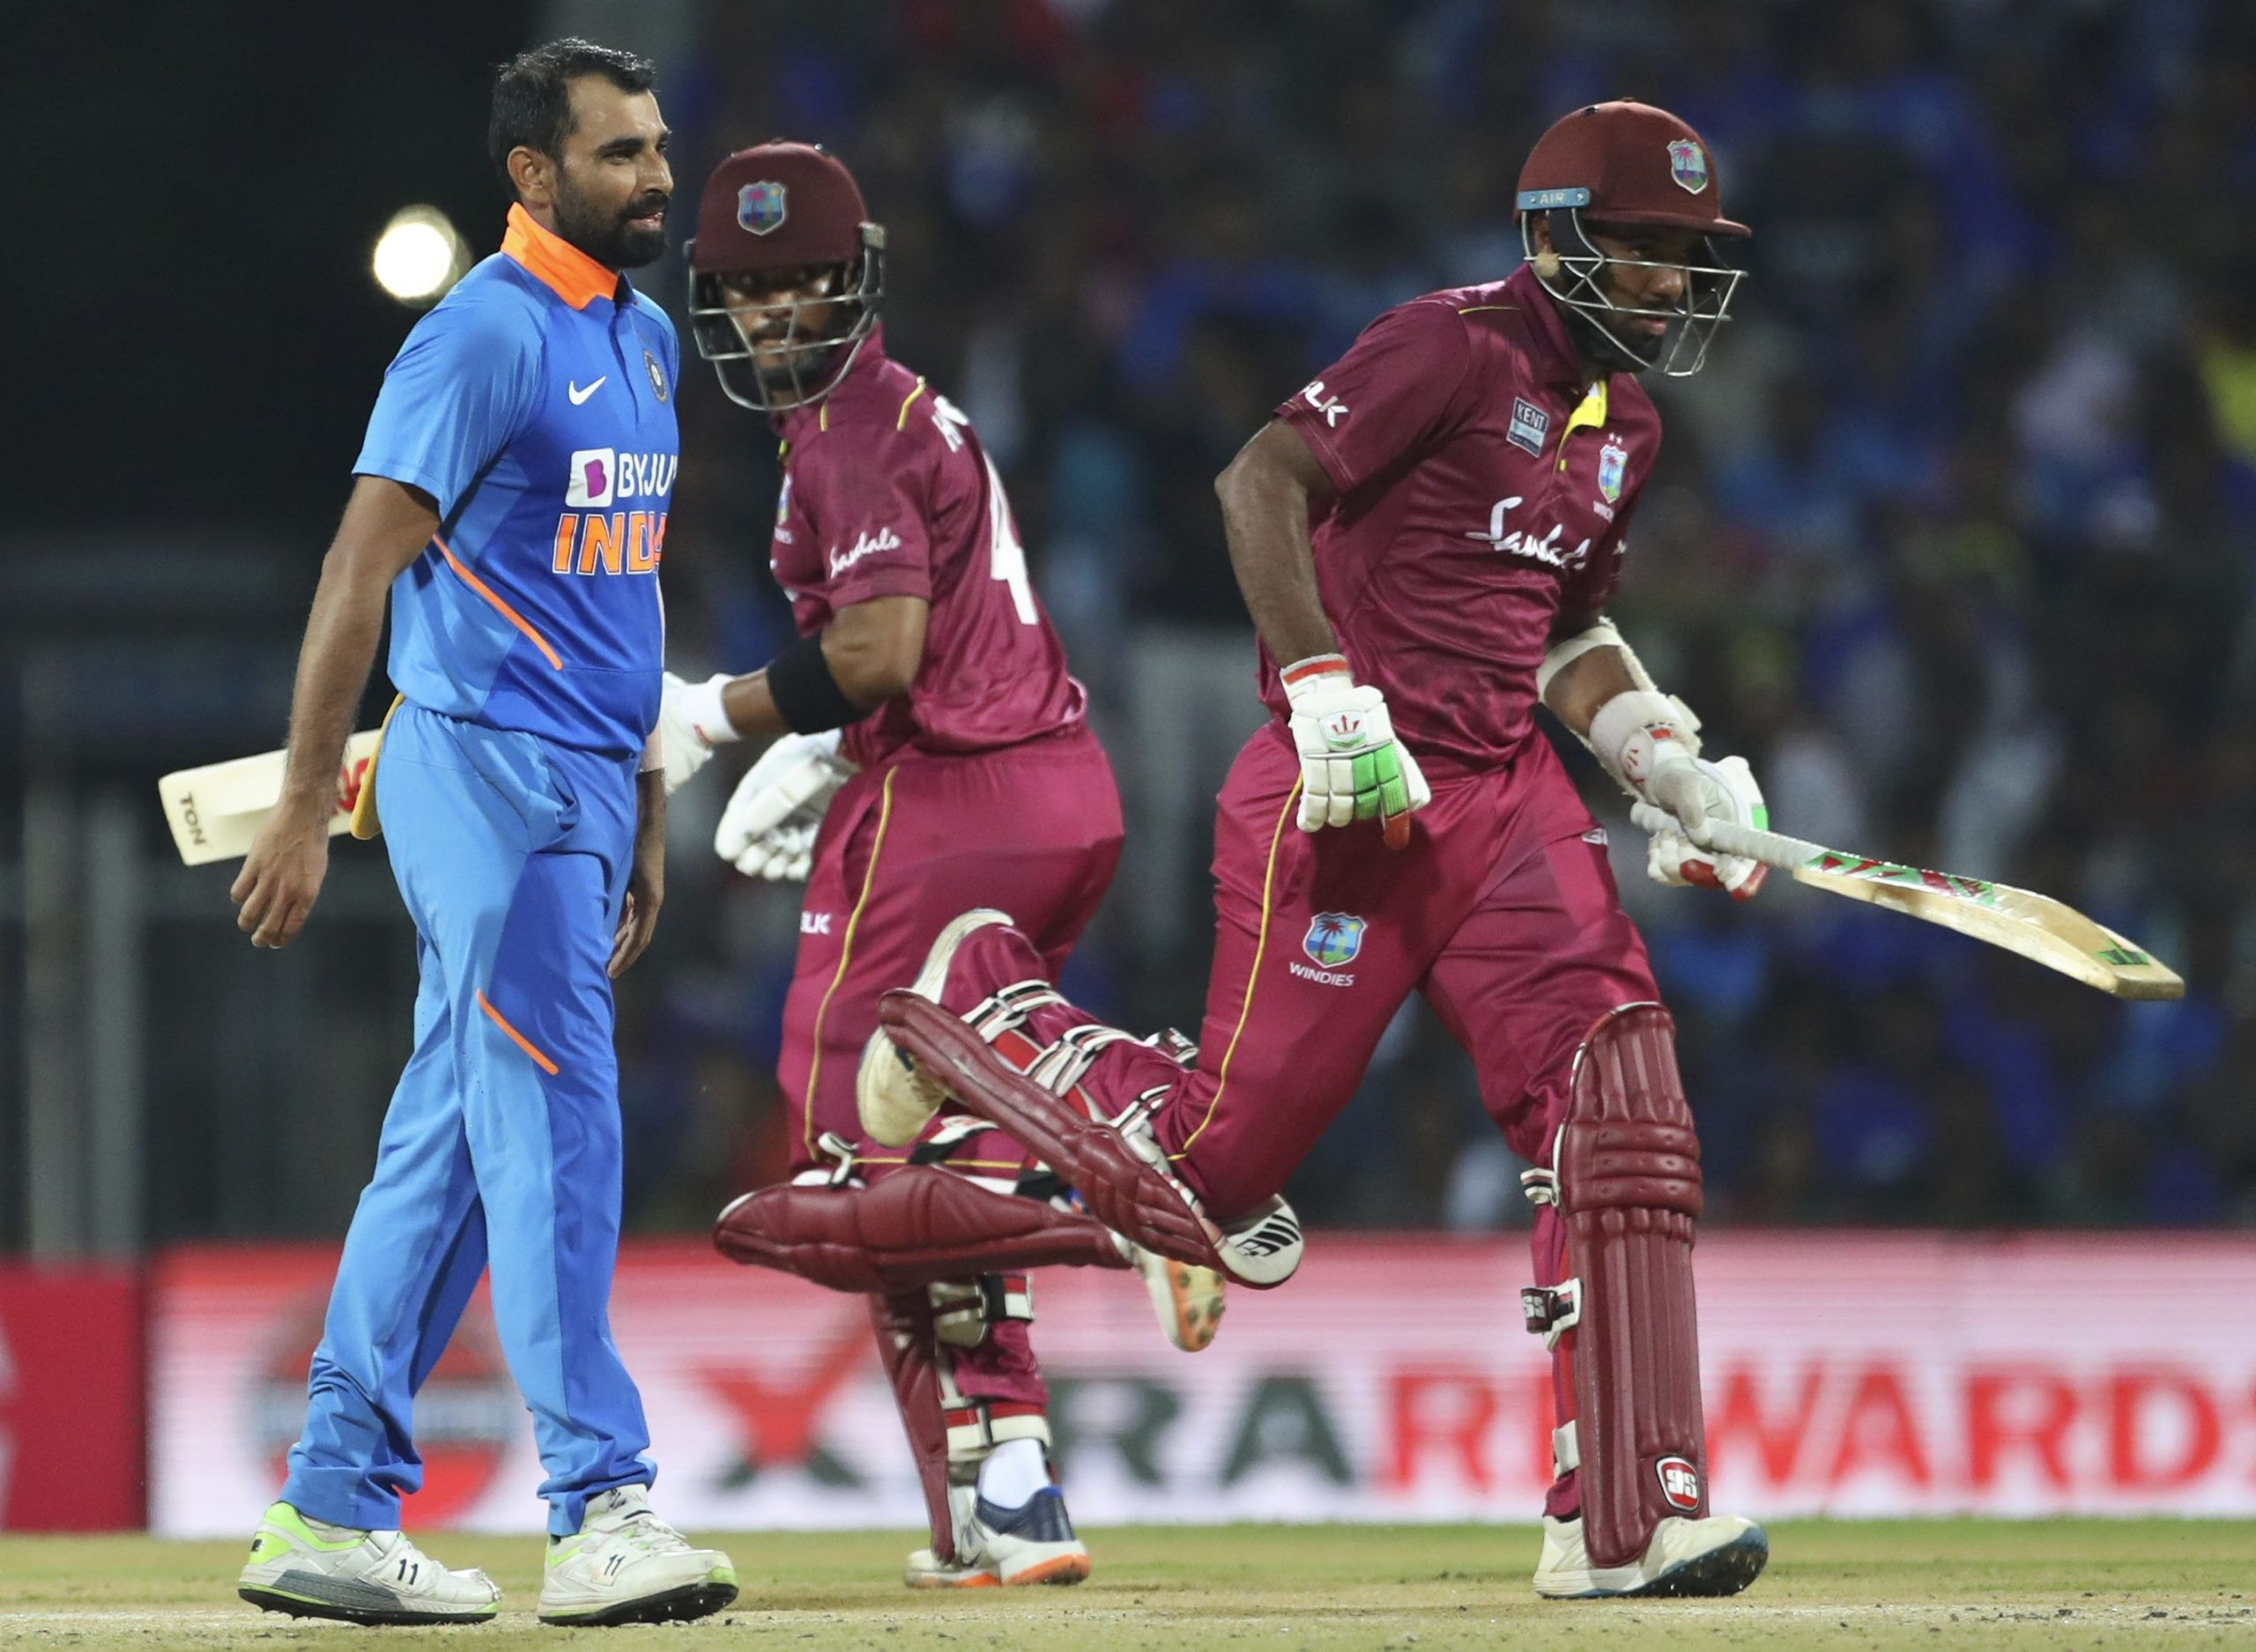 CRICKET Hetmyer ton as West Indies beats India by 8